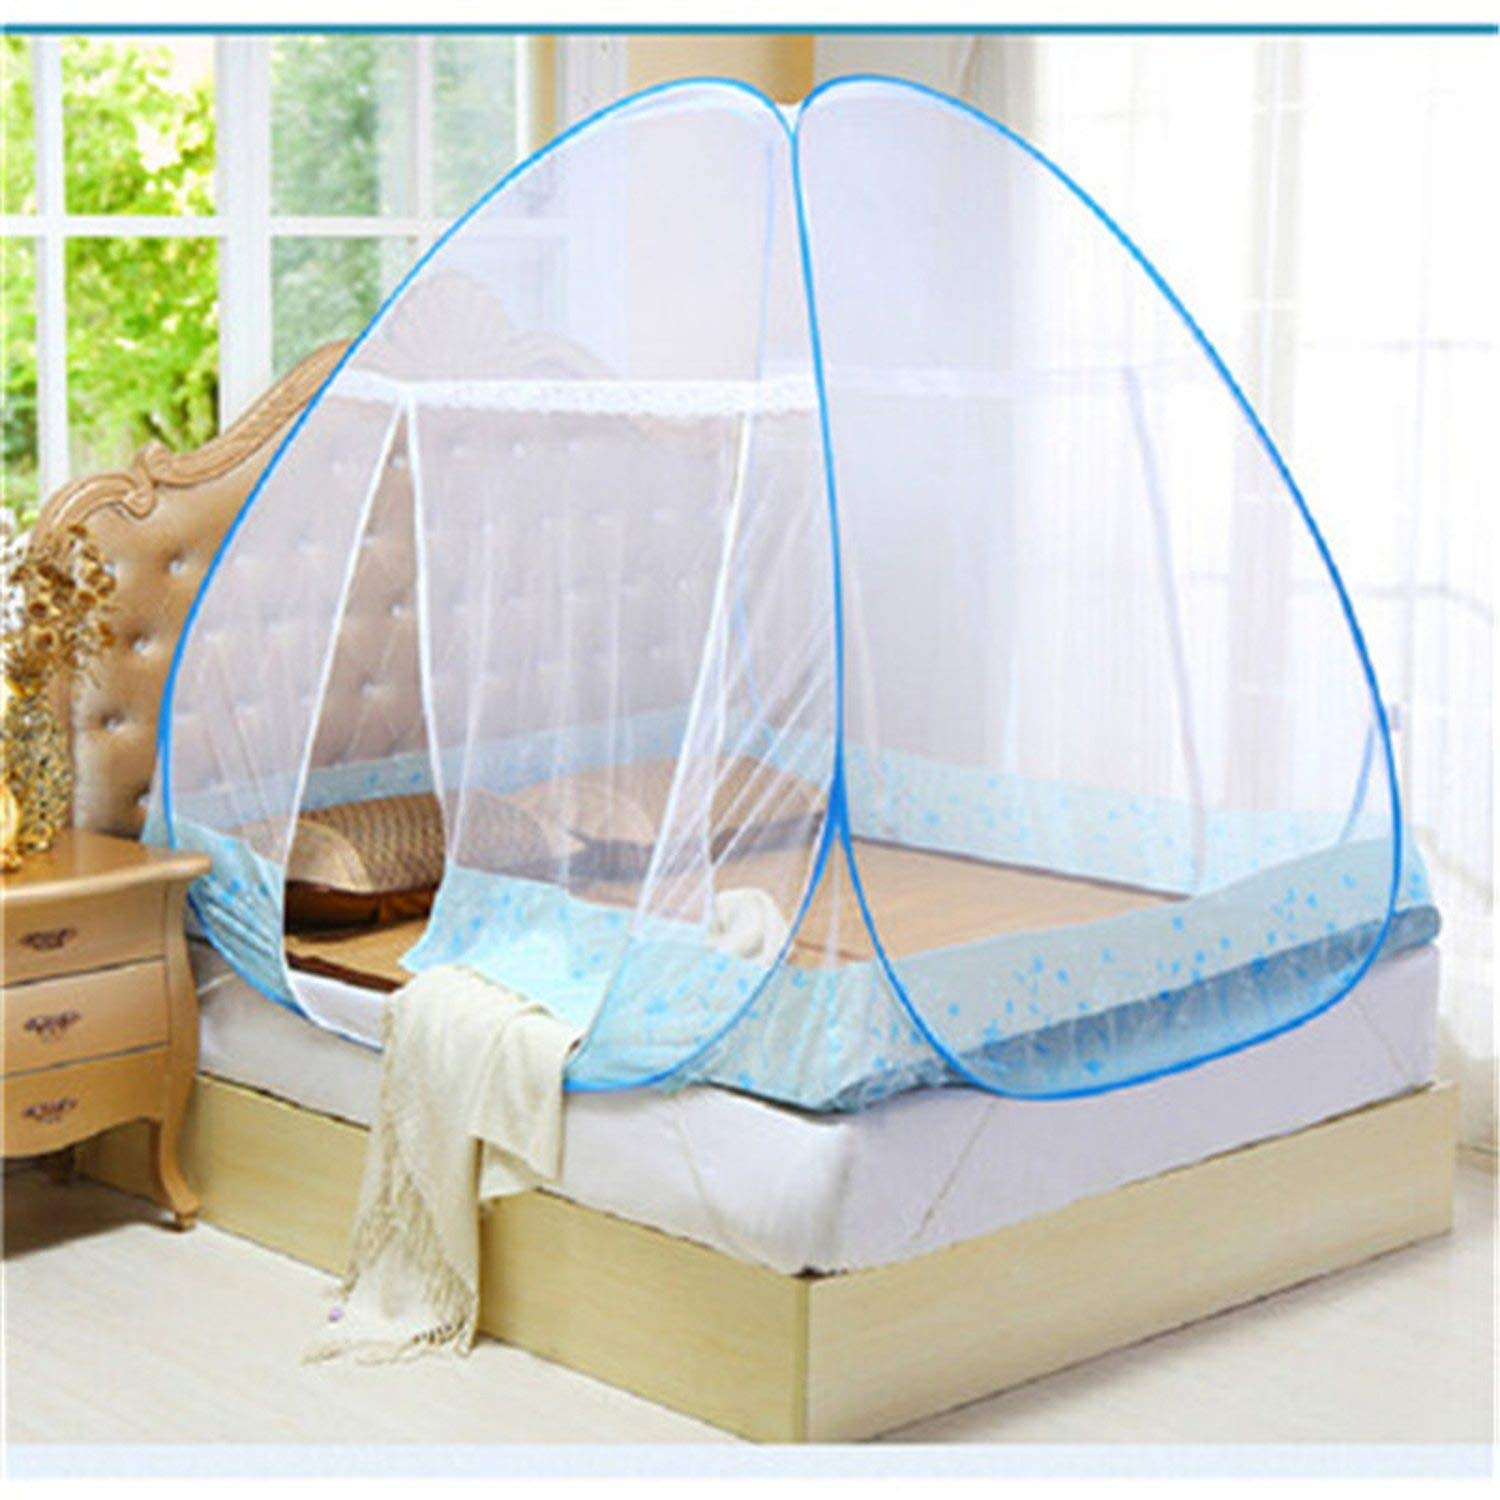 Mosquito Net for Bed Pink Blue Purple Student Bunk Bed Net Mesh Adult Double Bed Netting Tent Mosquito,D by Try My Best Mosquito Net (Image #3)